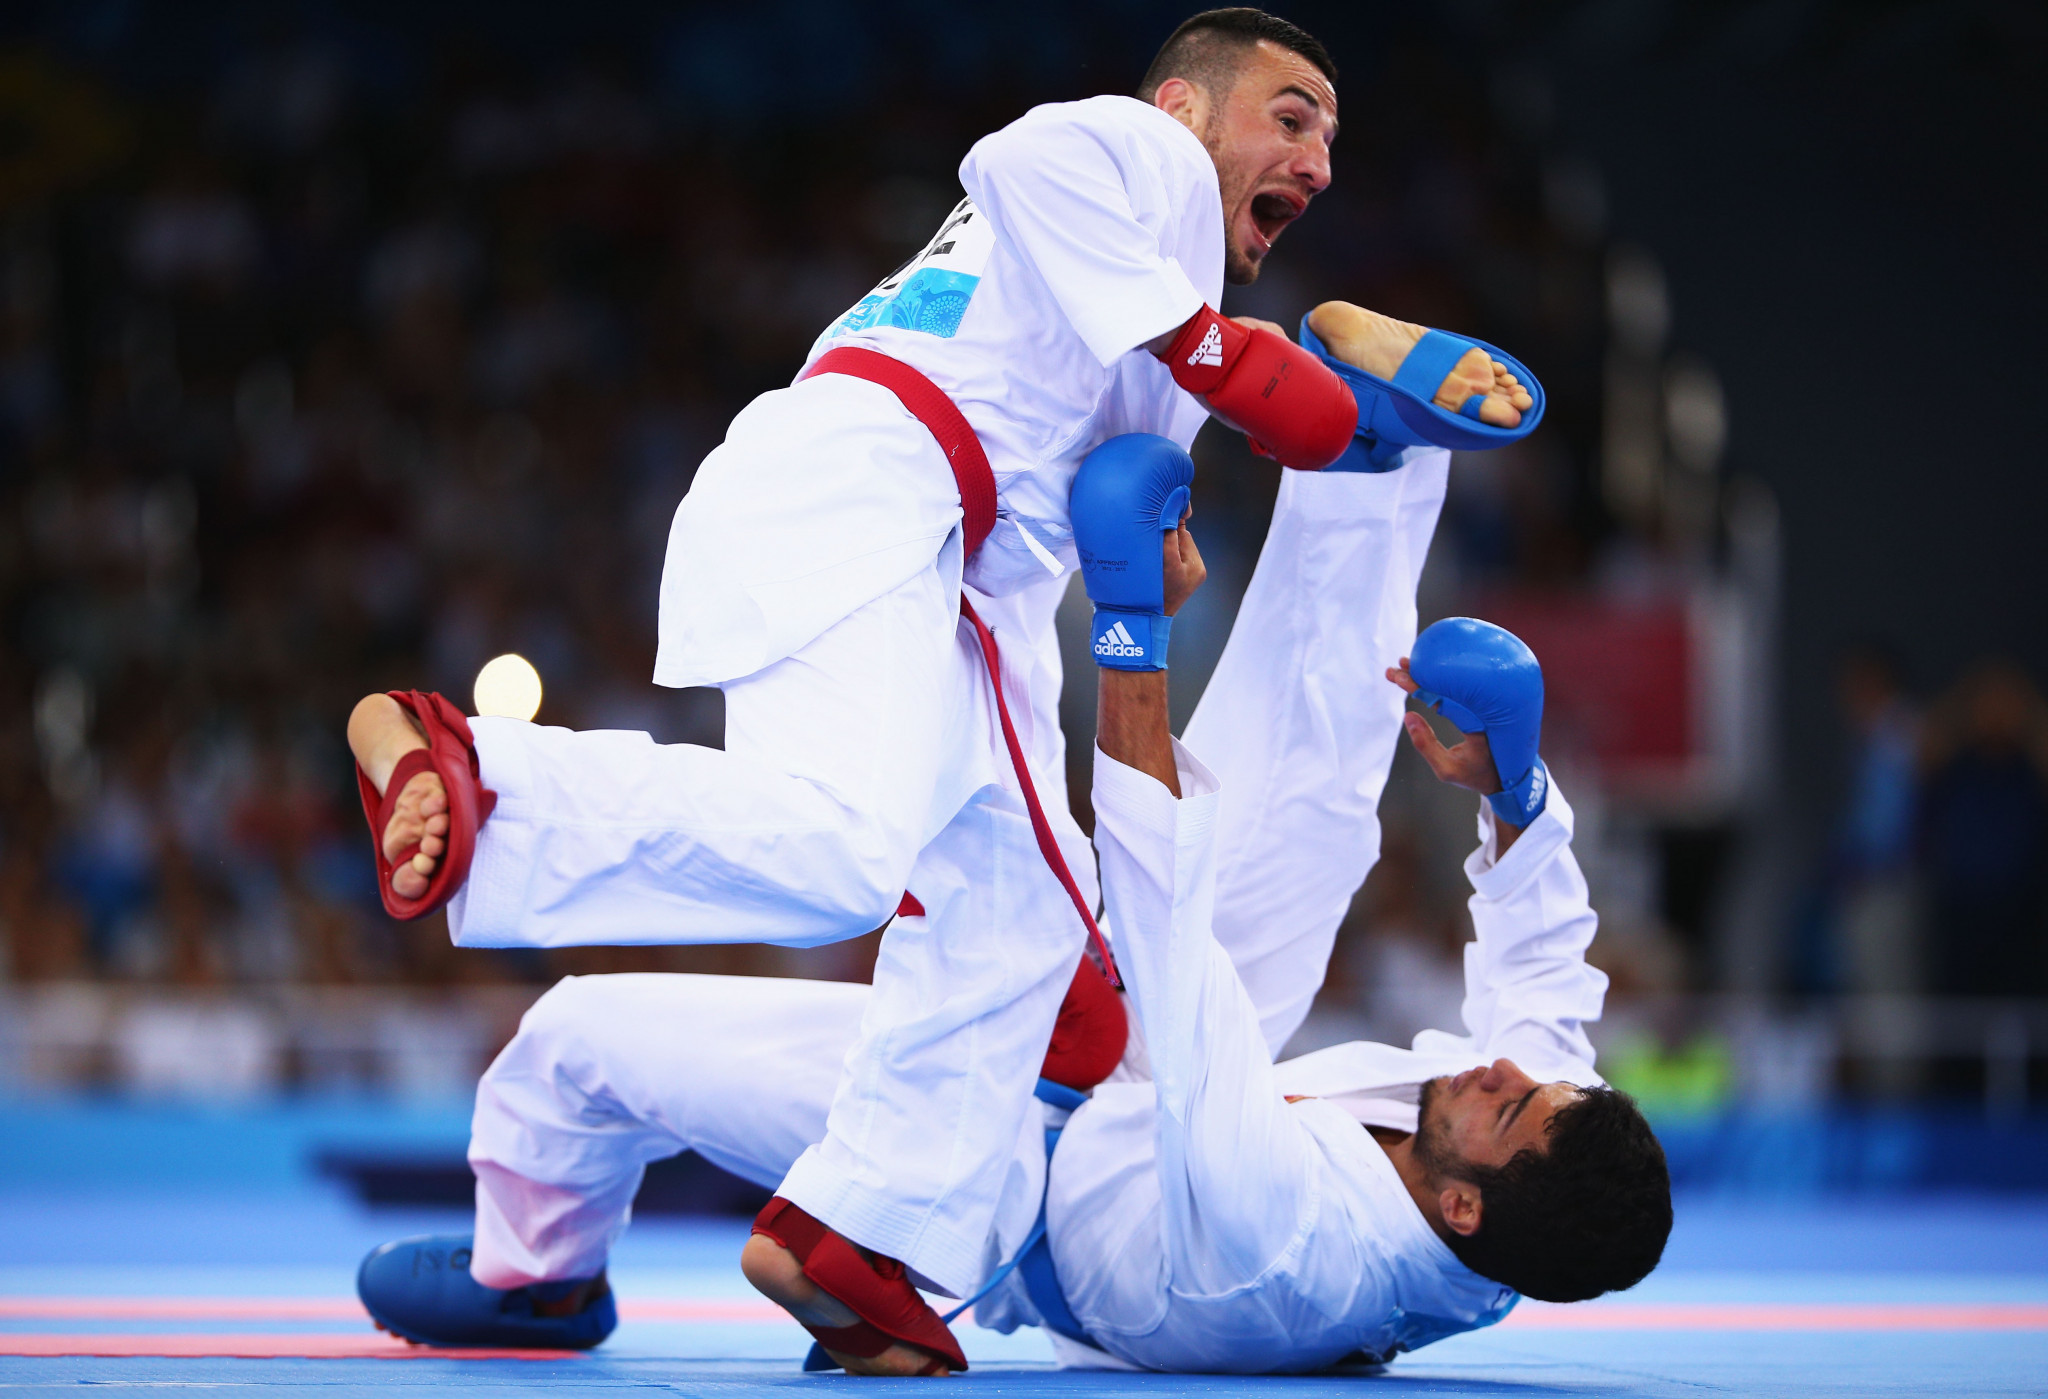 Karate has appeared at both previous editions of the European Games ©Getty Images